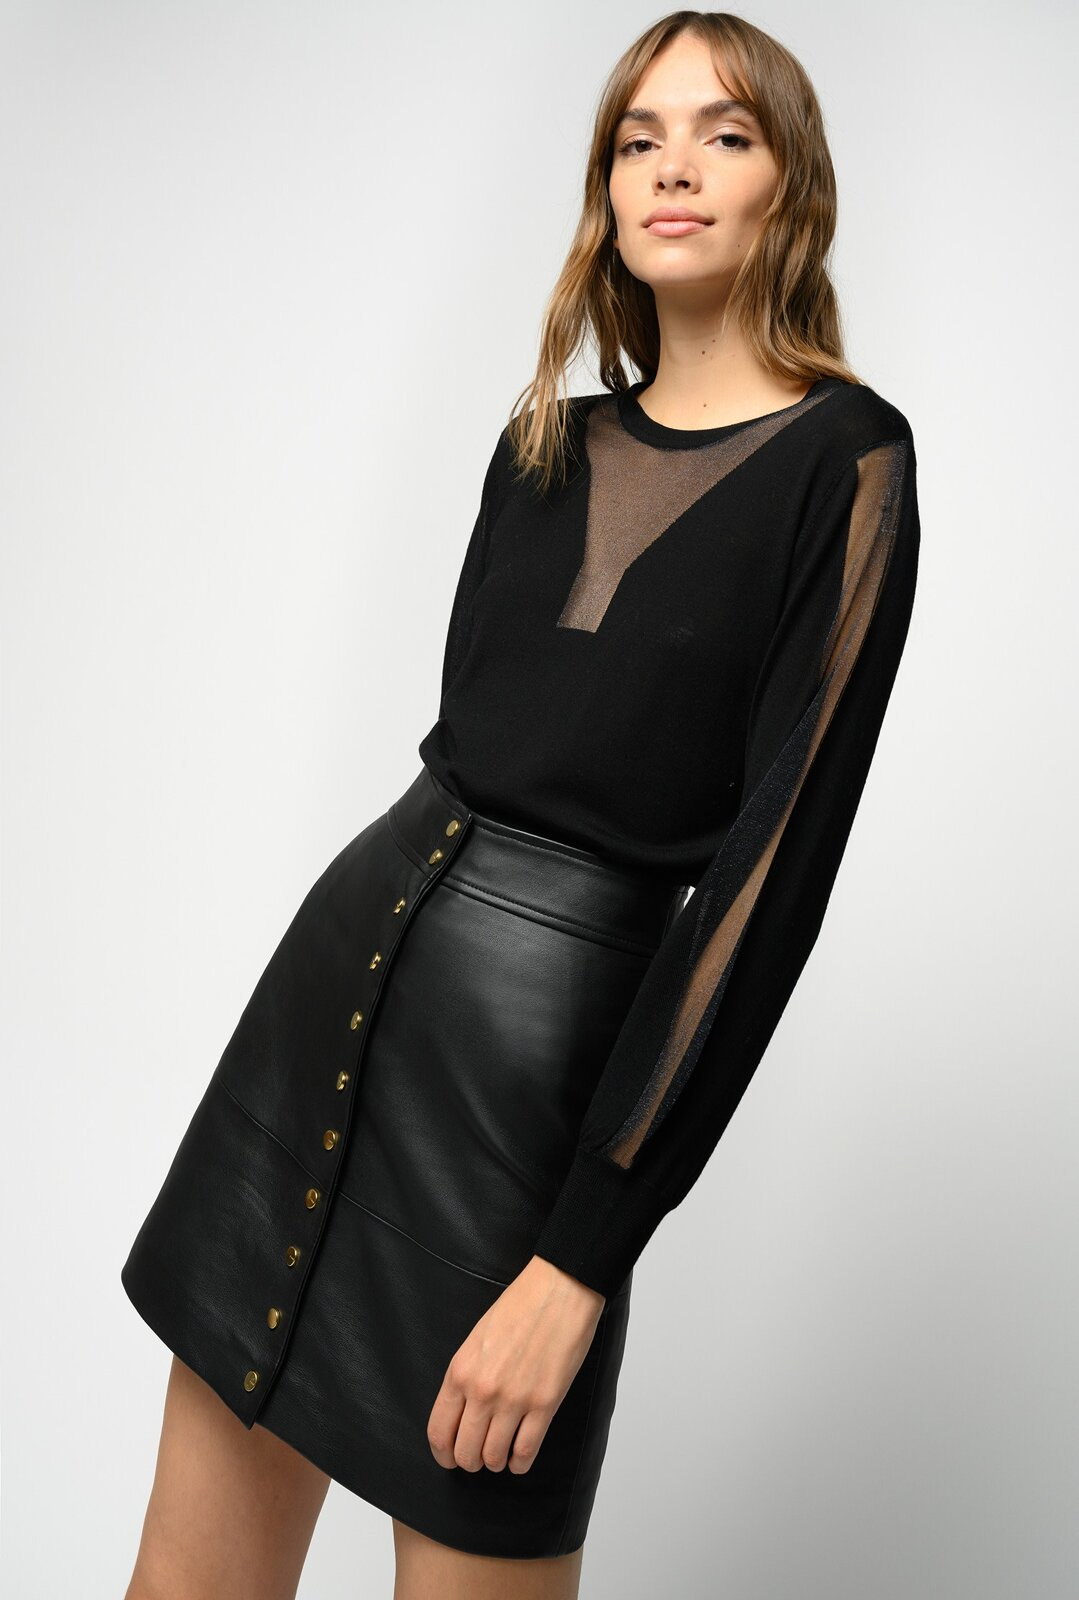 Pullover With Inlays - Pinko